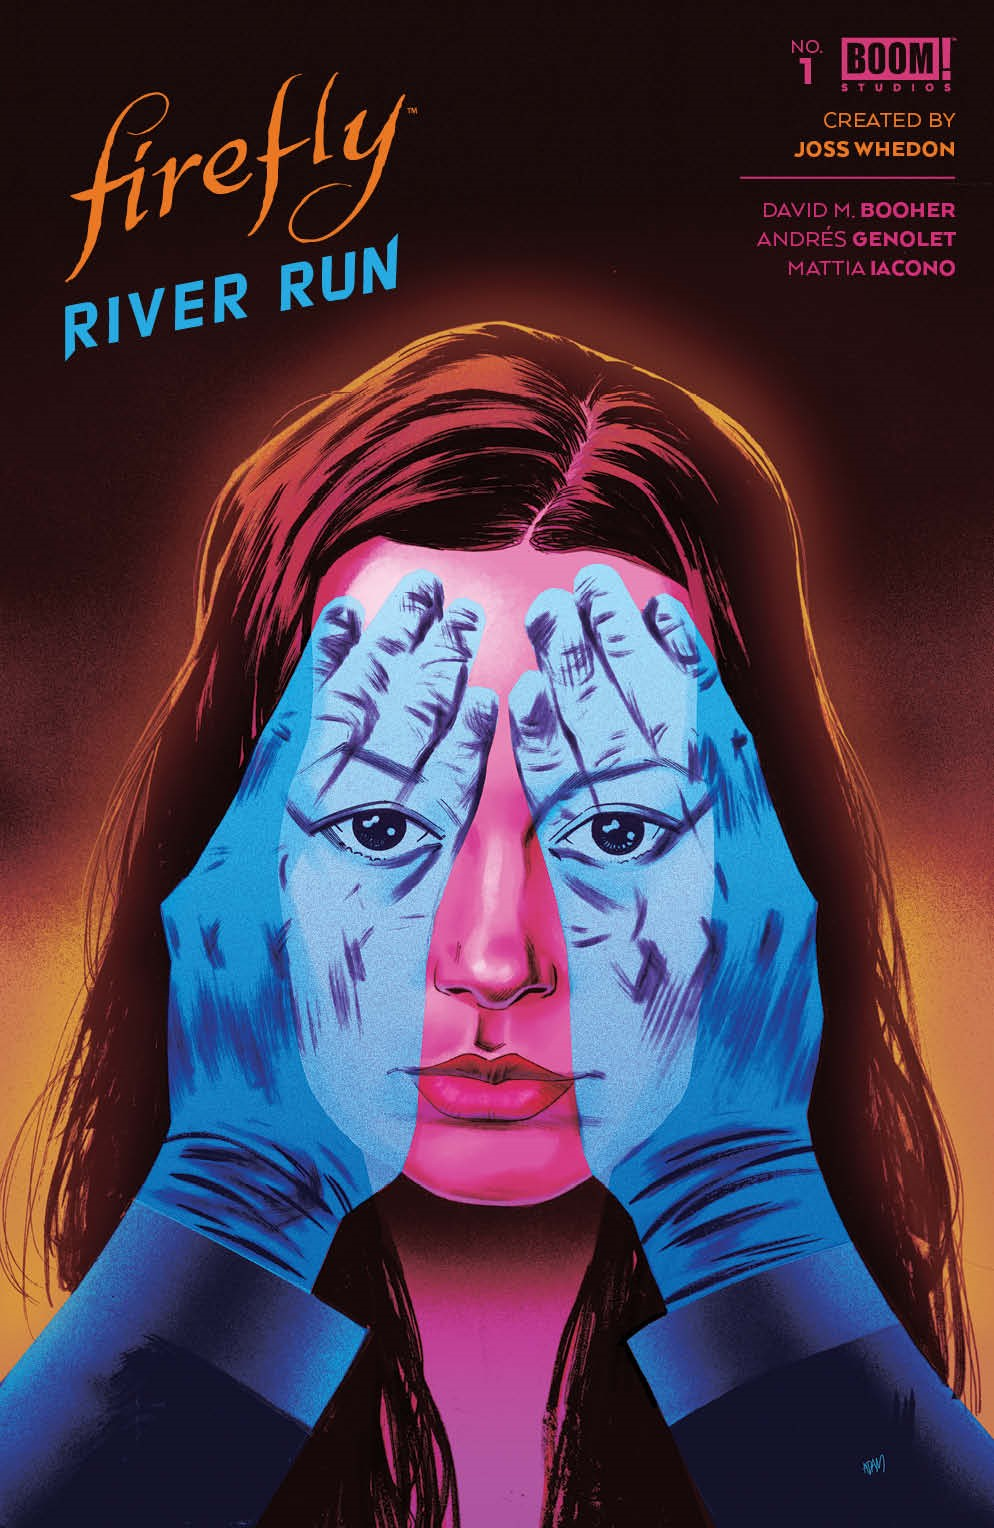 Firefly_RiverRun_001_Cover_B_Variant ComicList Previews: FIREFLY RIVER RUN #1